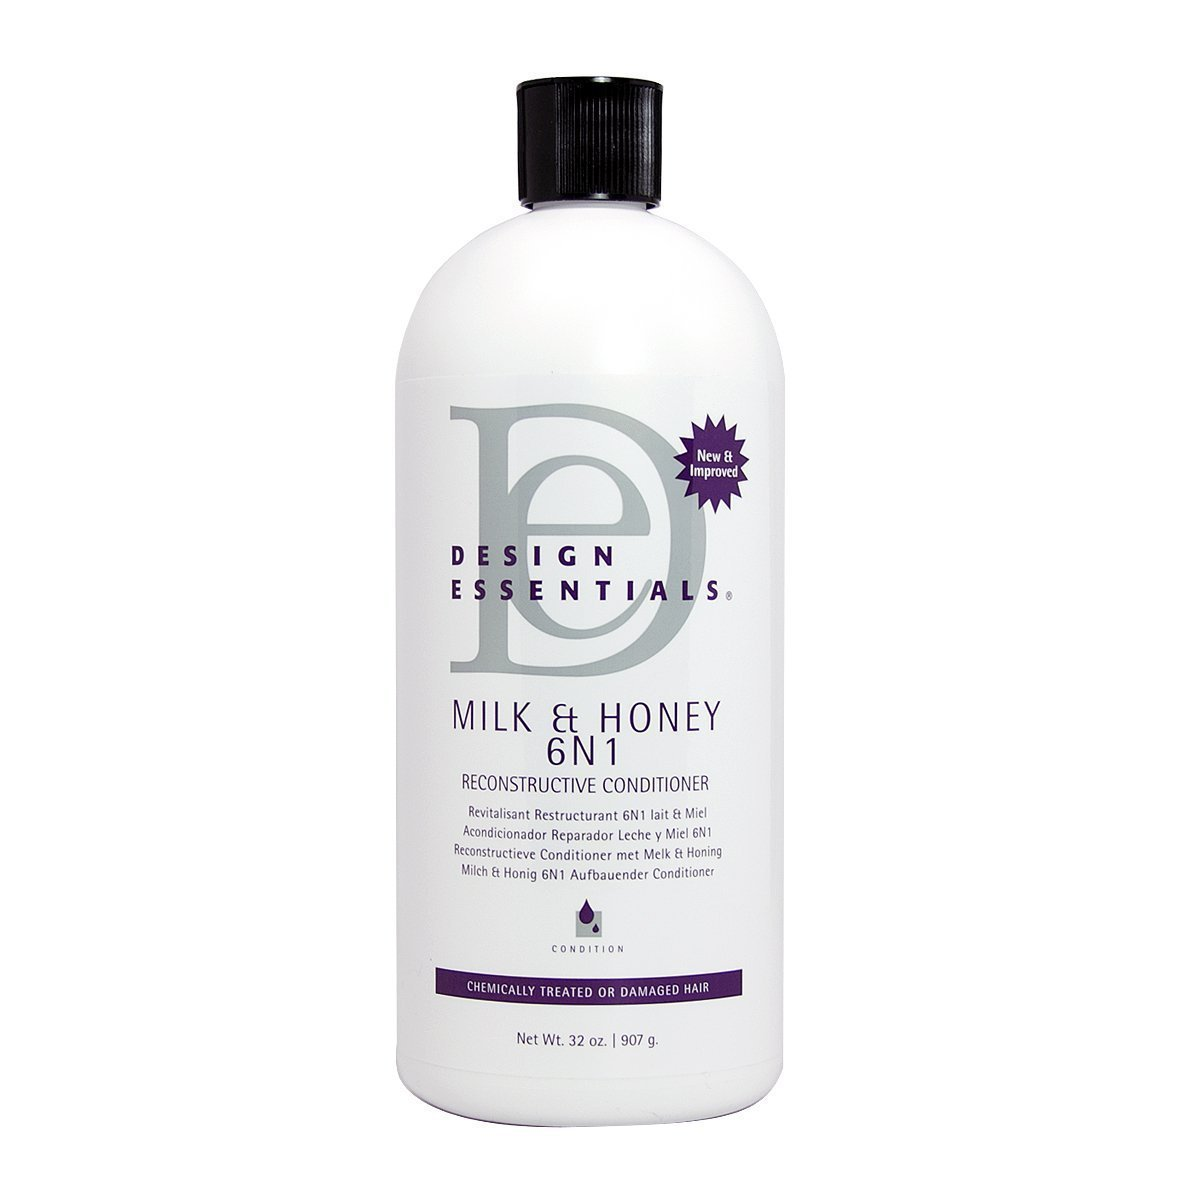 Amazon.com : Design Essentials Milk & Honey 6N1 Reconstructive Conditioner, 32oz : Beauty